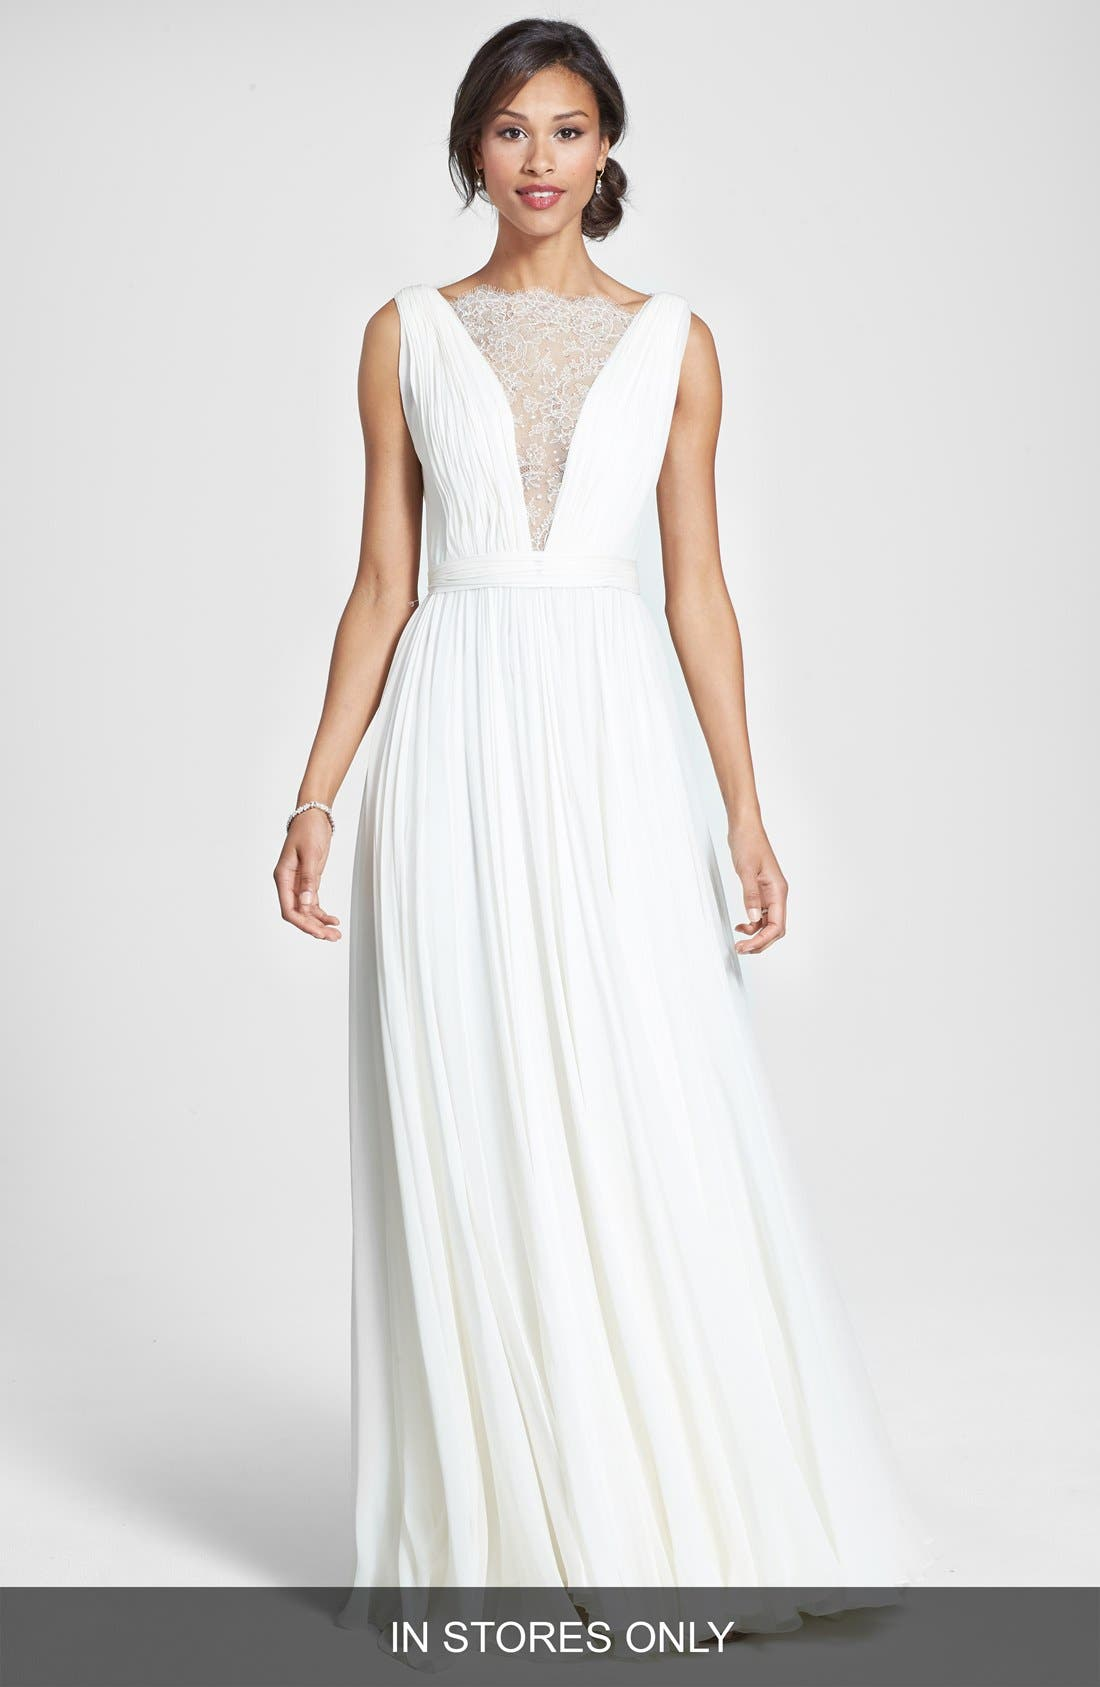 Main Image - Roses by Reem Acra 'Wisteria' Lace Inset Draped Silk Georgette Dress (In Stores Only)